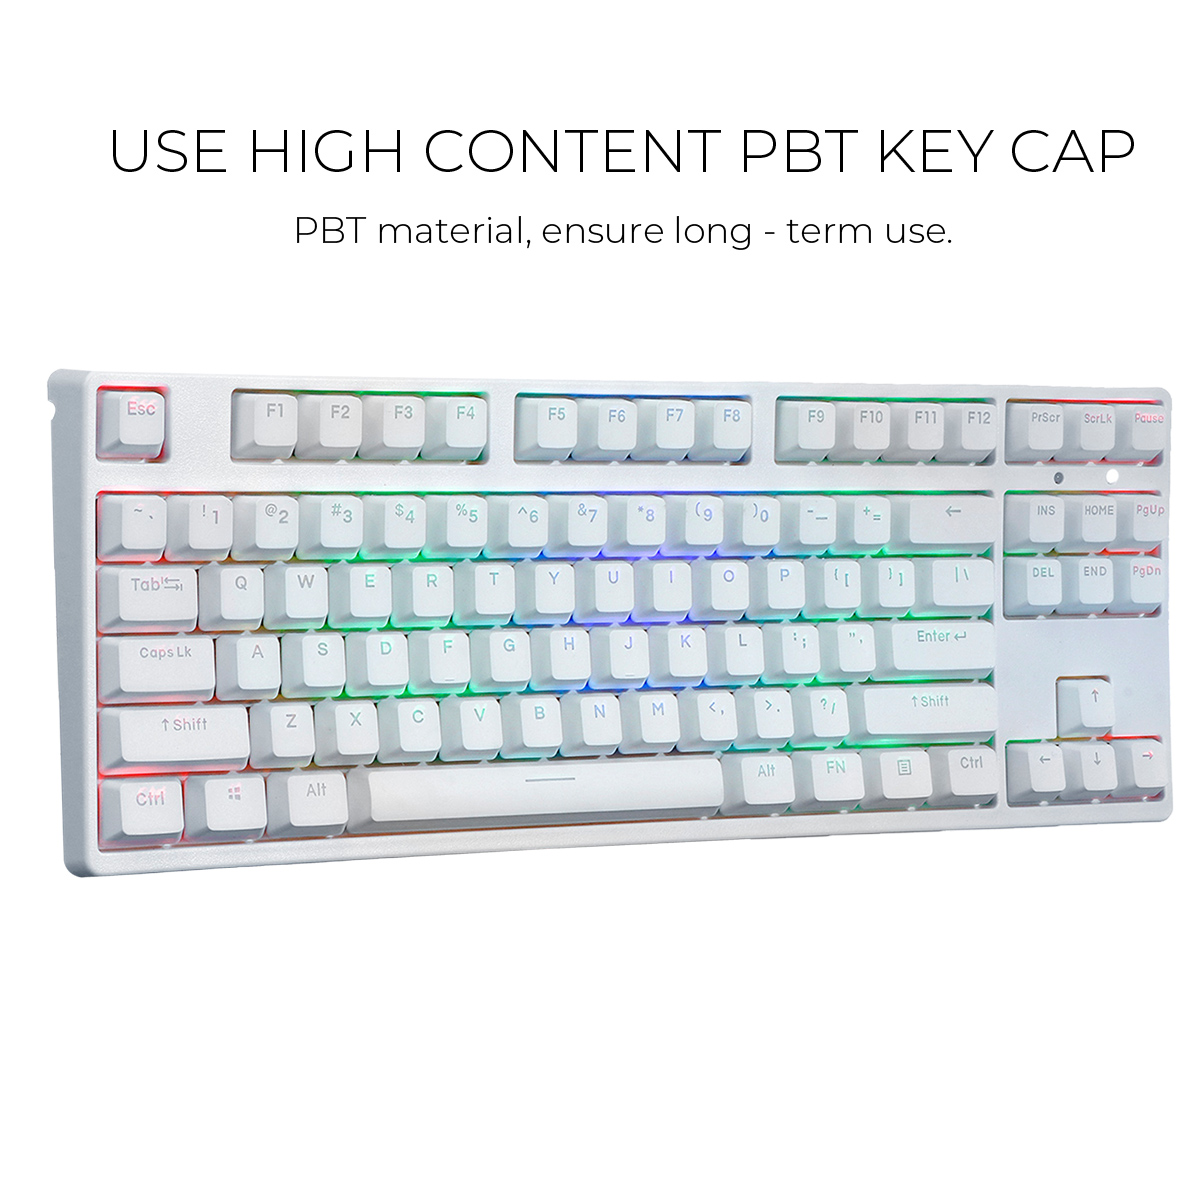 USB Wired RGB Backlit 87 Key NKRO Gateron Switch PBT Double Shot Keycaps Mechanical Gaming Keyboard for E-sport office PC Laptop image